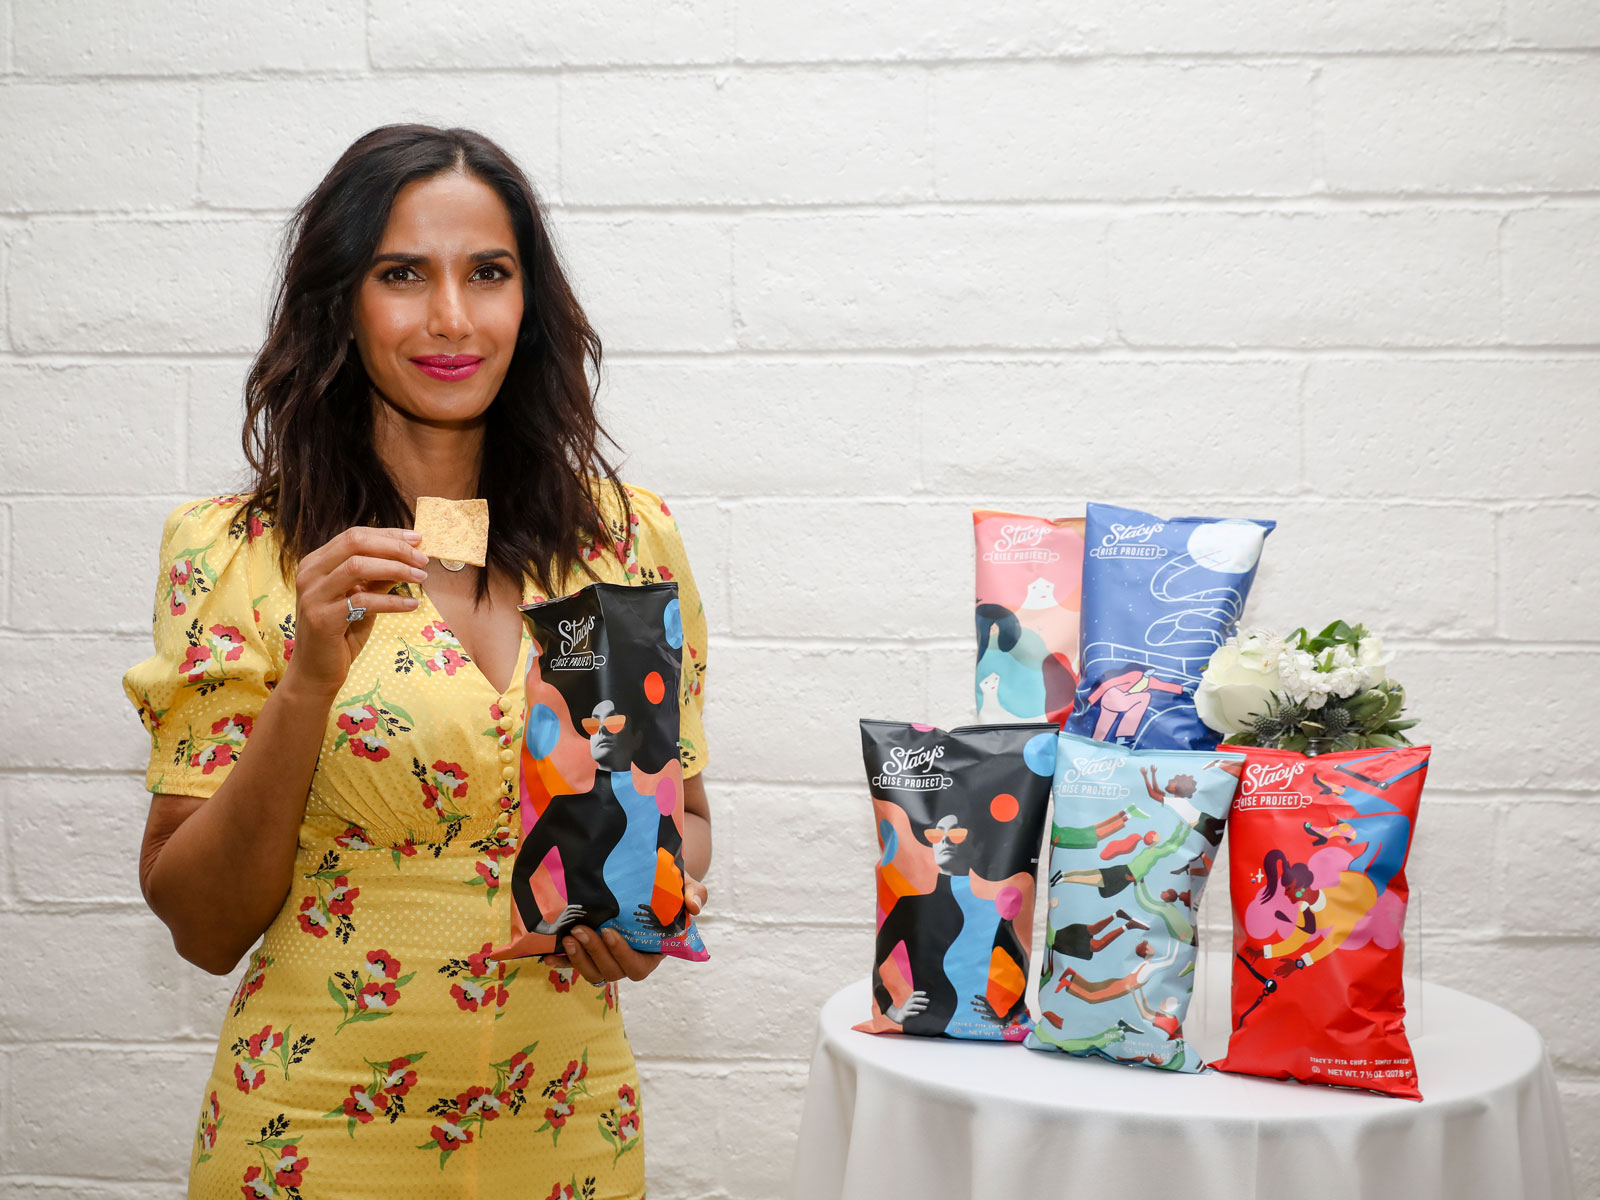 Padma Lakshmi Joins Initiative to Mentor Female Entrepreneurs in the Food Industry